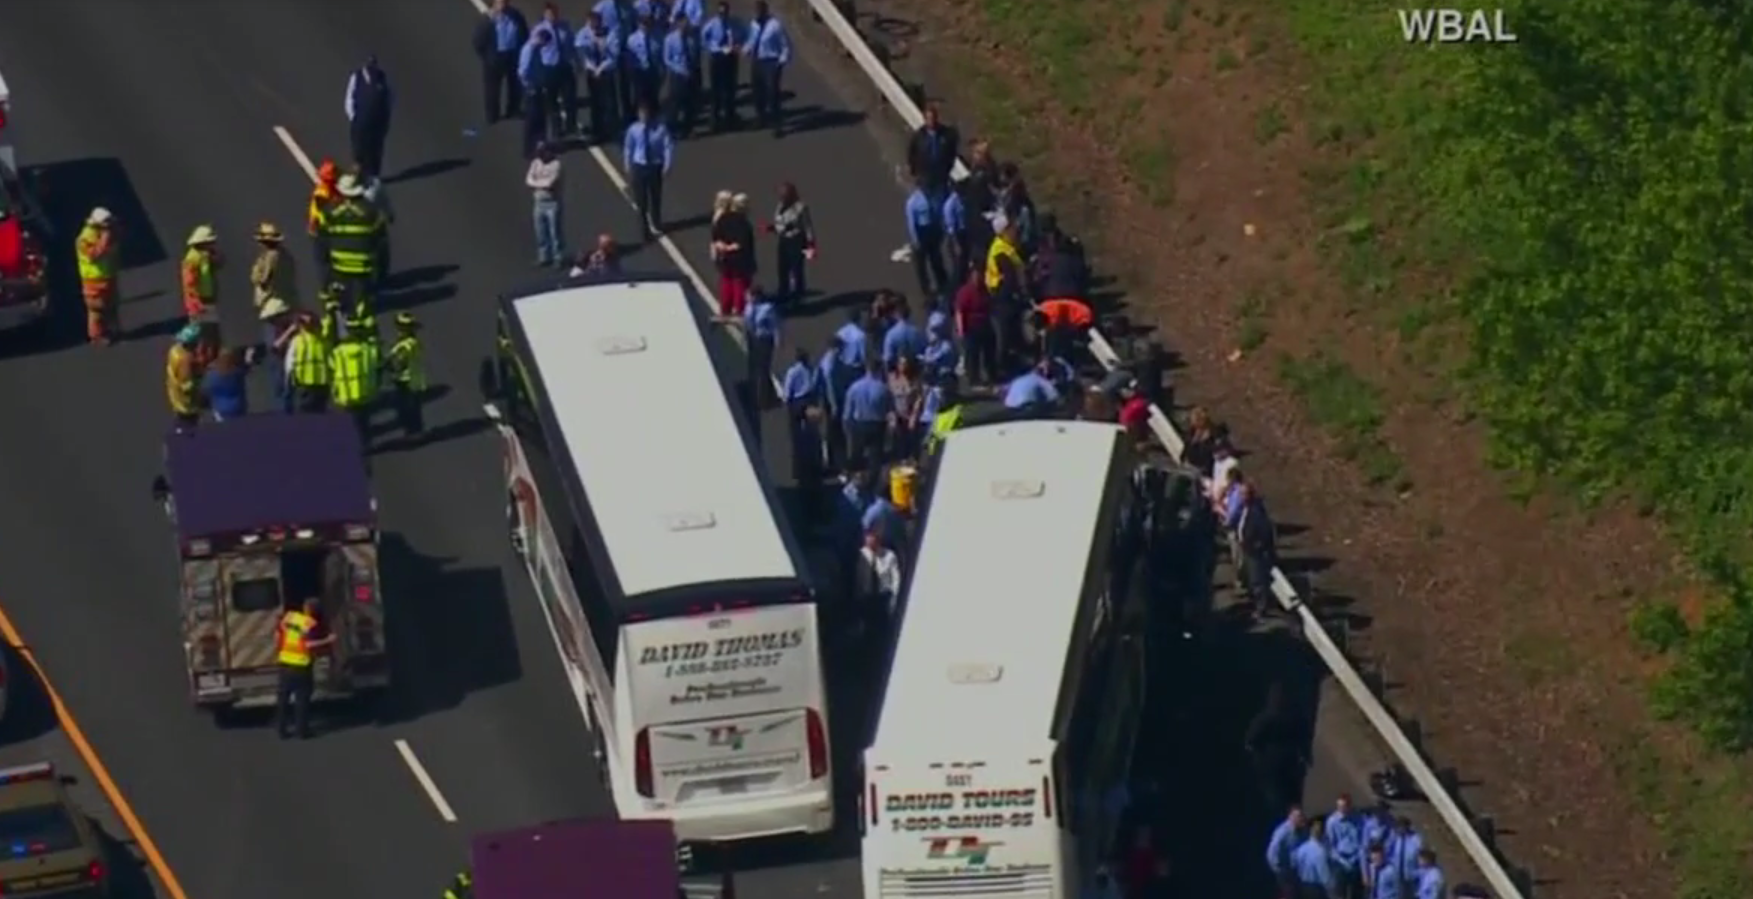 Commuter bus crashes on Md. interstate; multiple injuries reported Monday, May 15, 2017. (CNN Newsource)